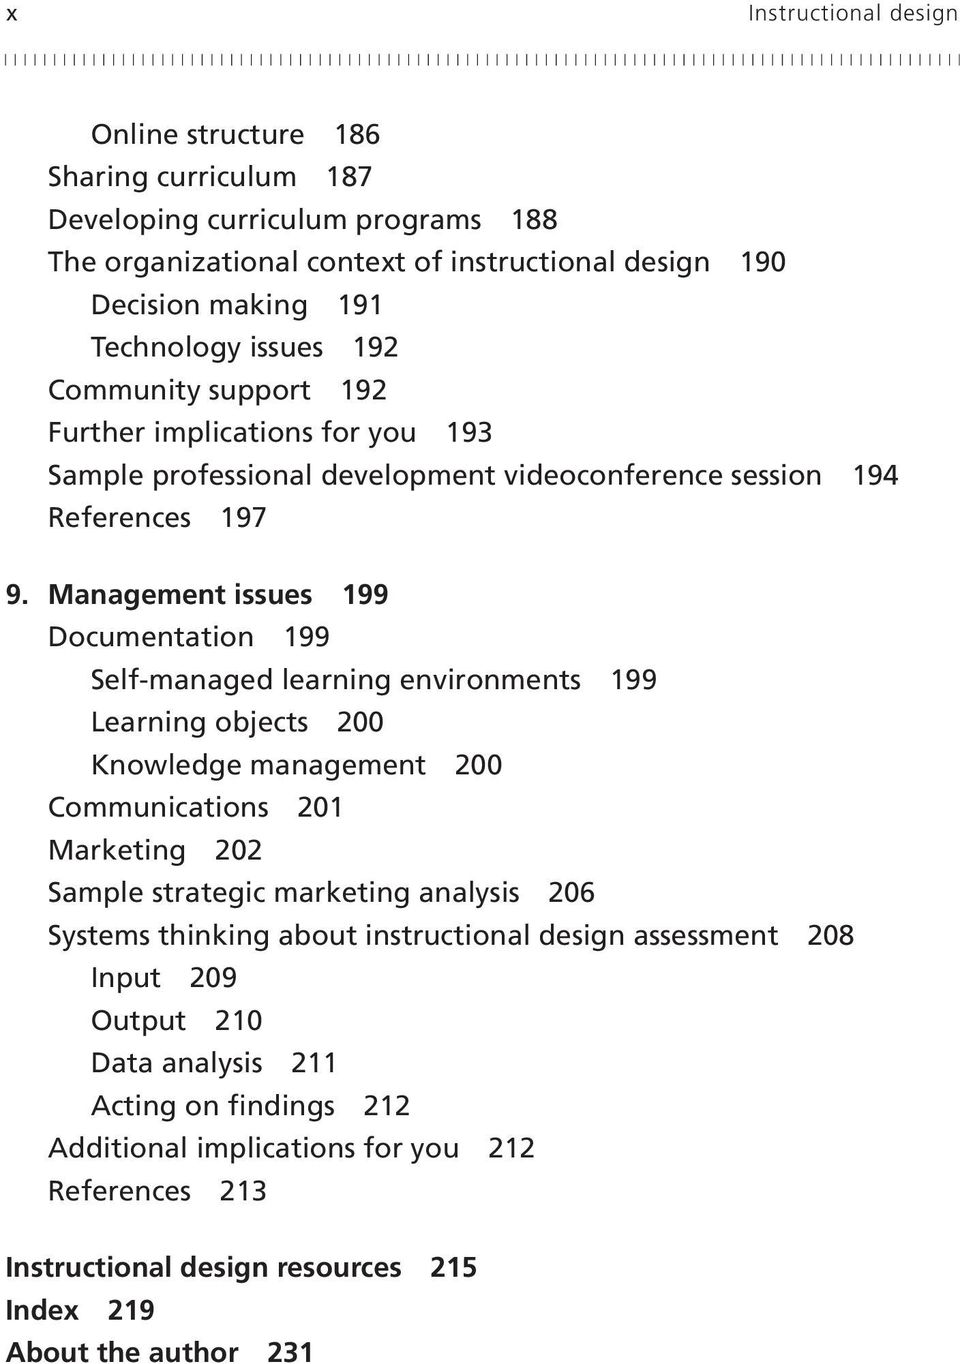 Management issues 199 Documentation 199 Self-managed learning environments 199 Learning objects 200 Knowledge management 200 Communications 201 Marketing 202 Sample strategic marketing